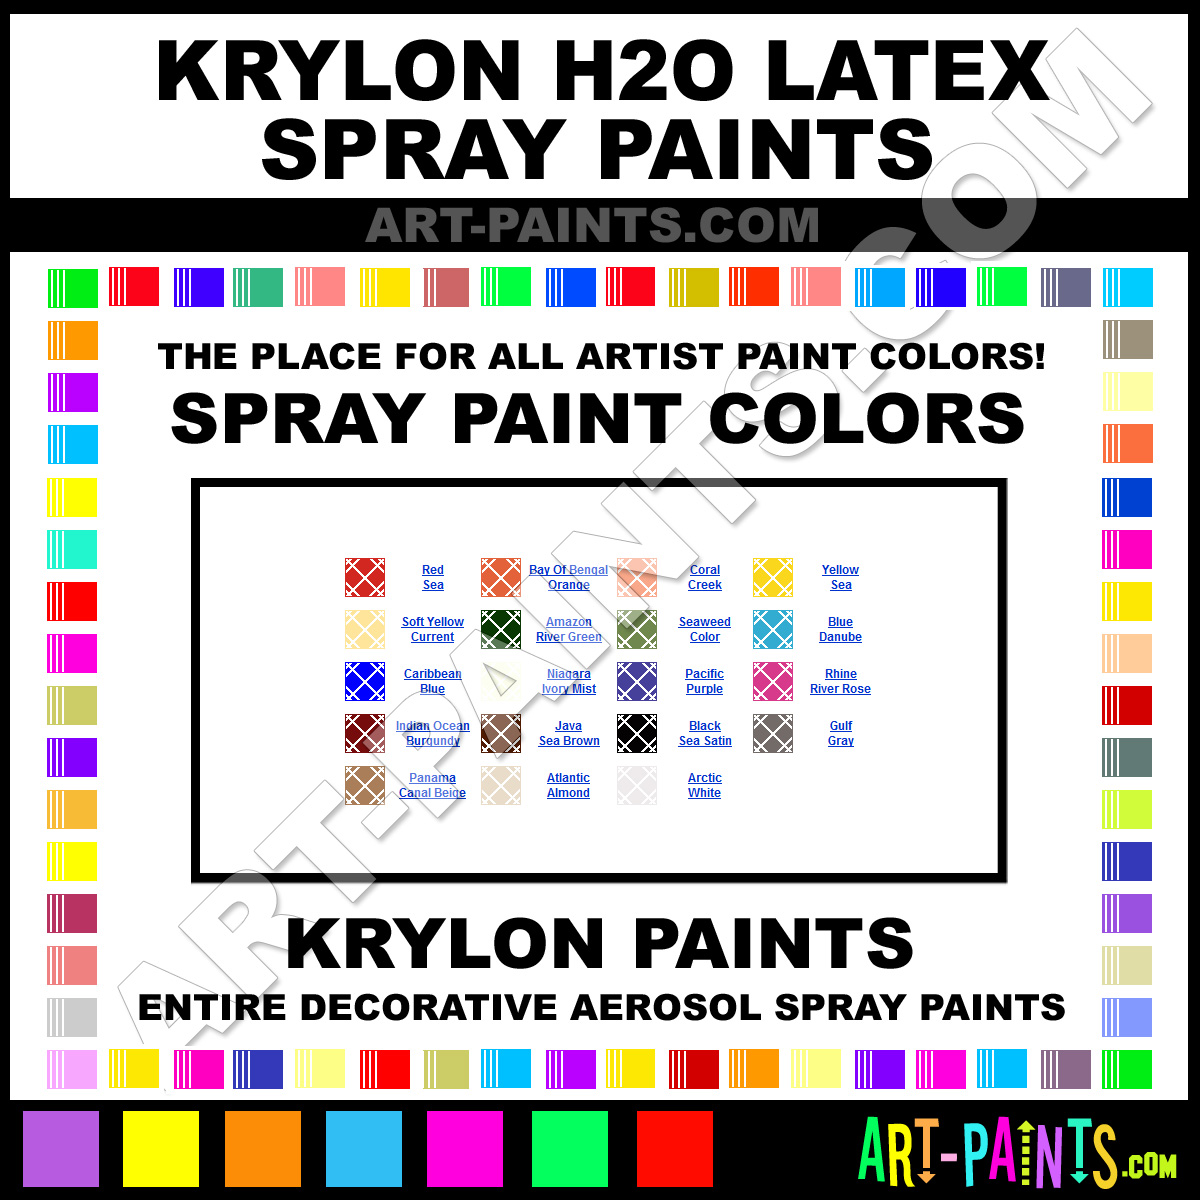 How to spray paint latex